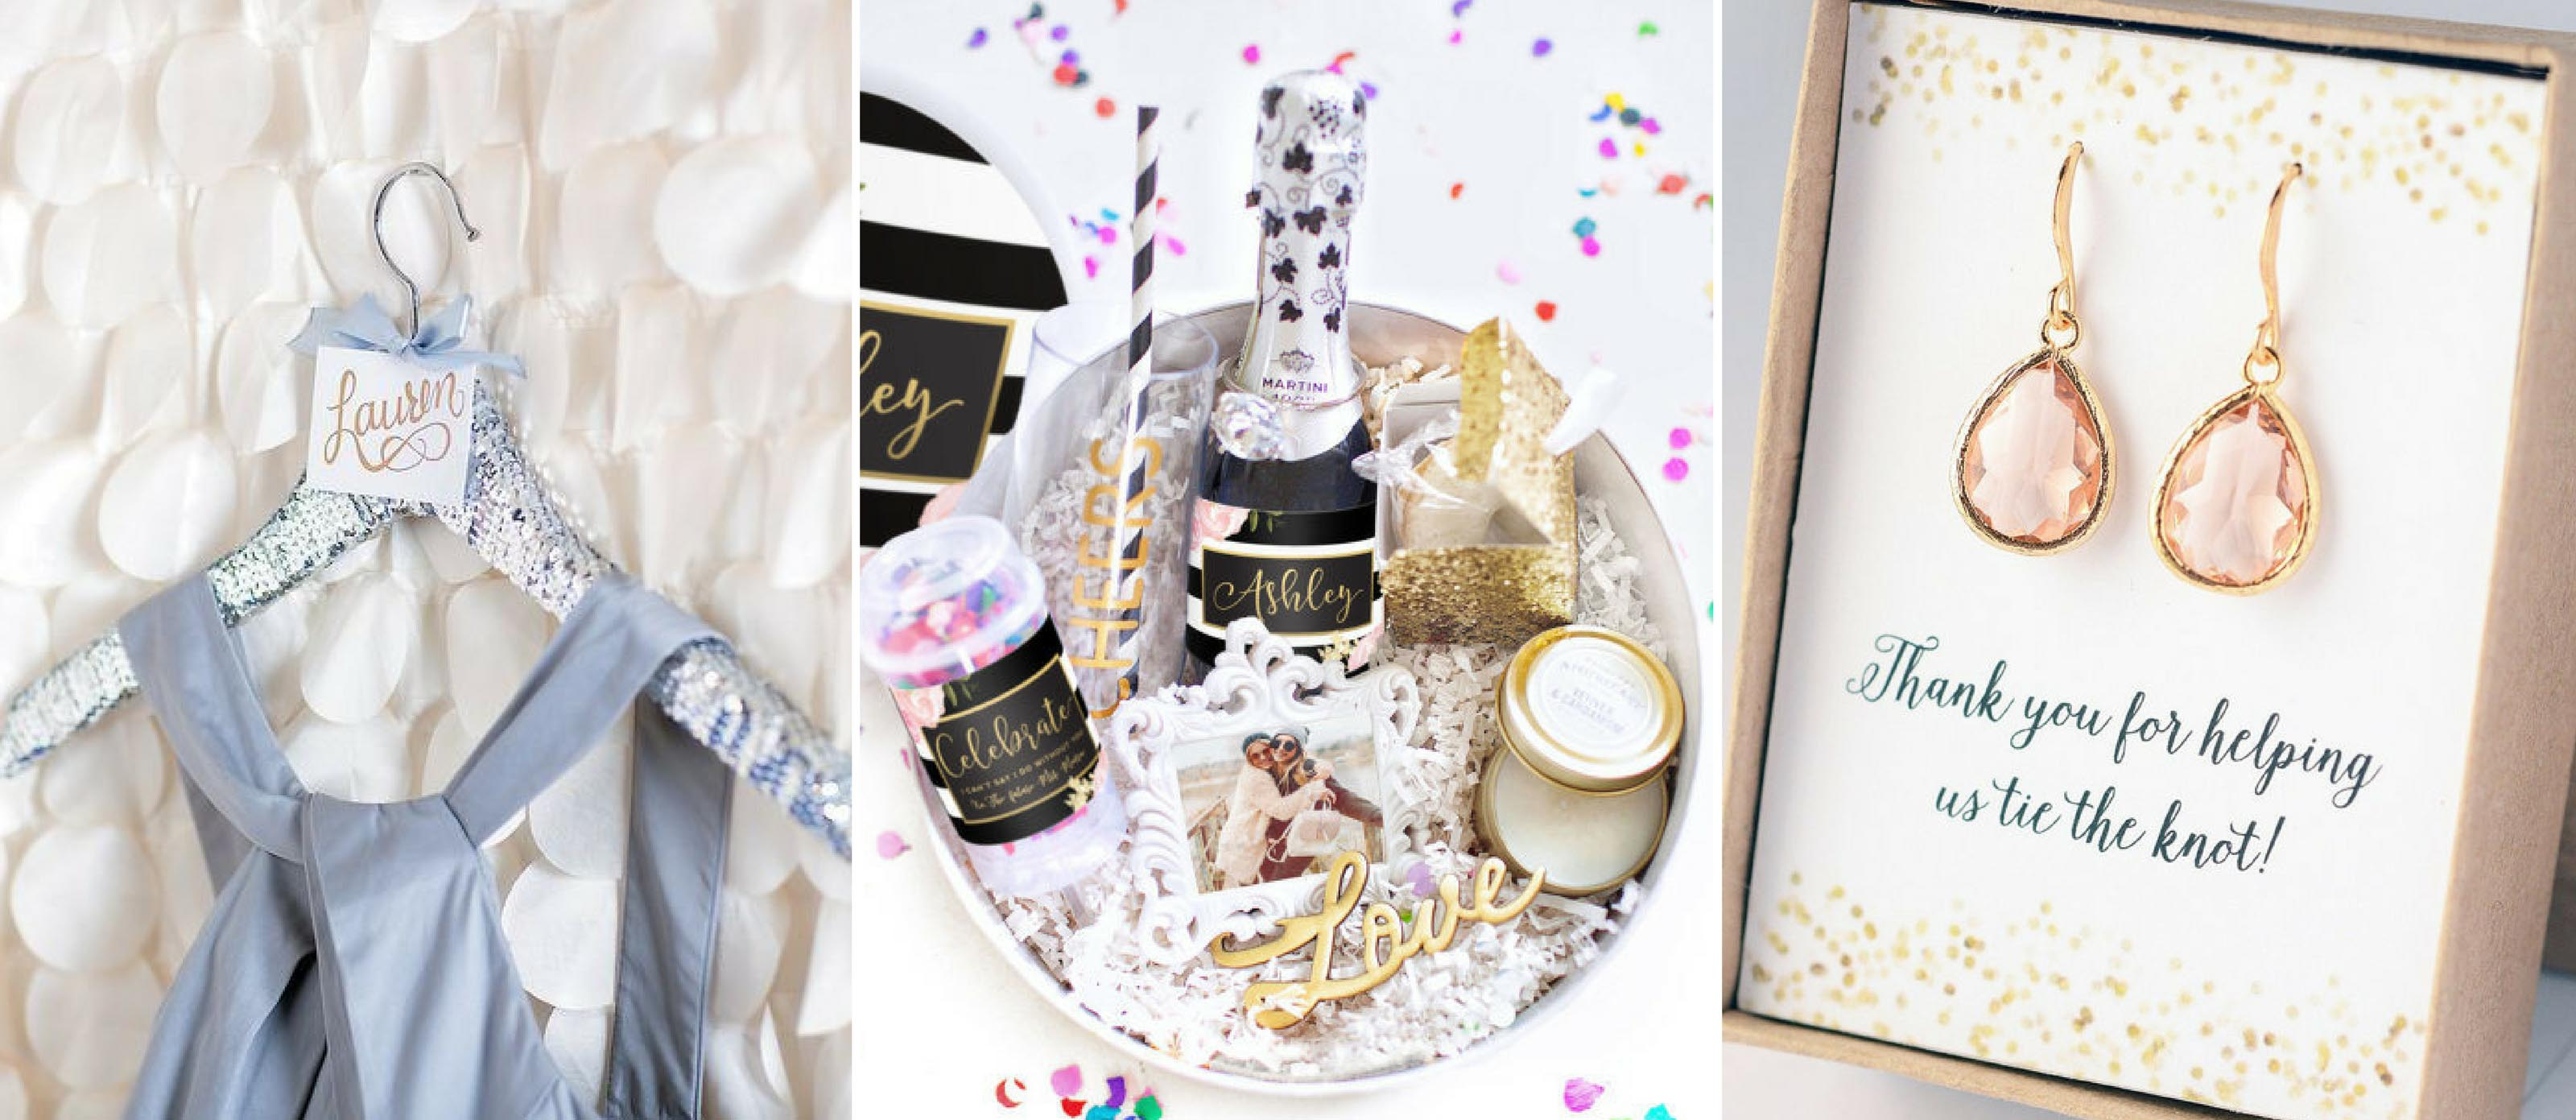 Unique Bridesmaid Gifts They'll